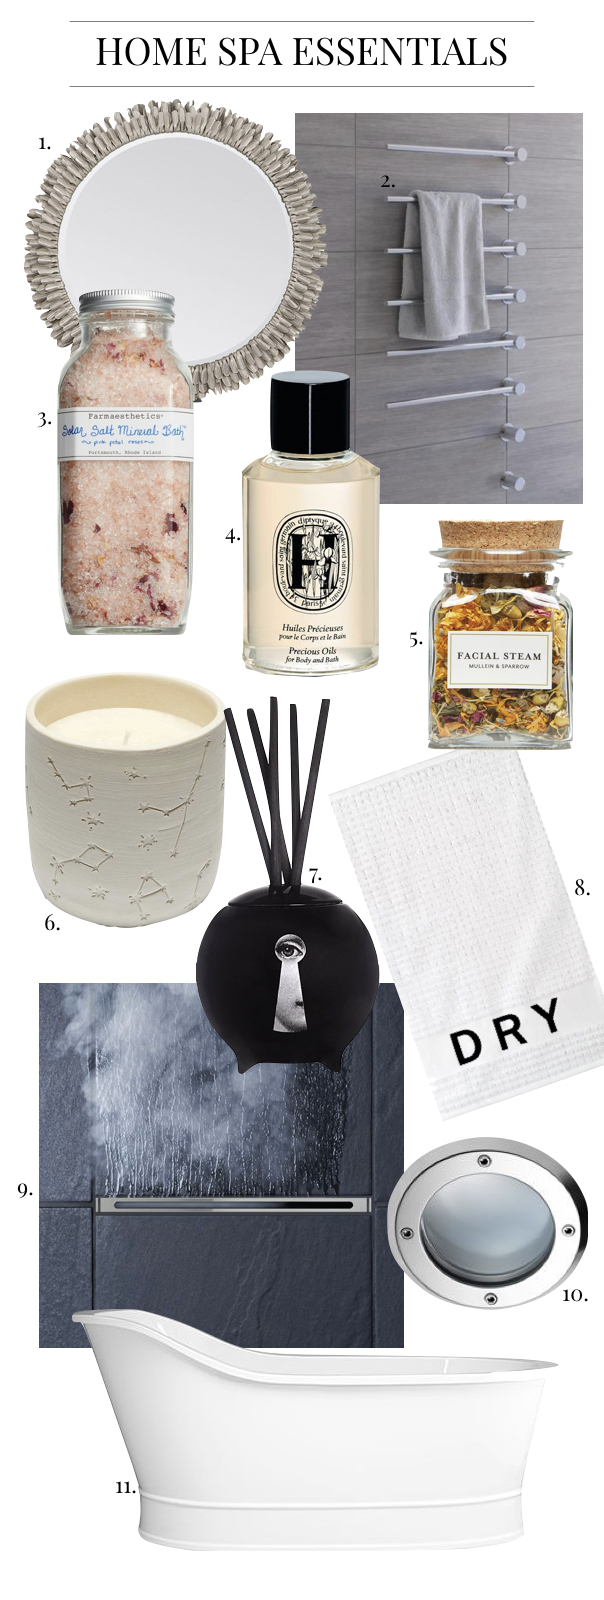 home-spa-essentials.001